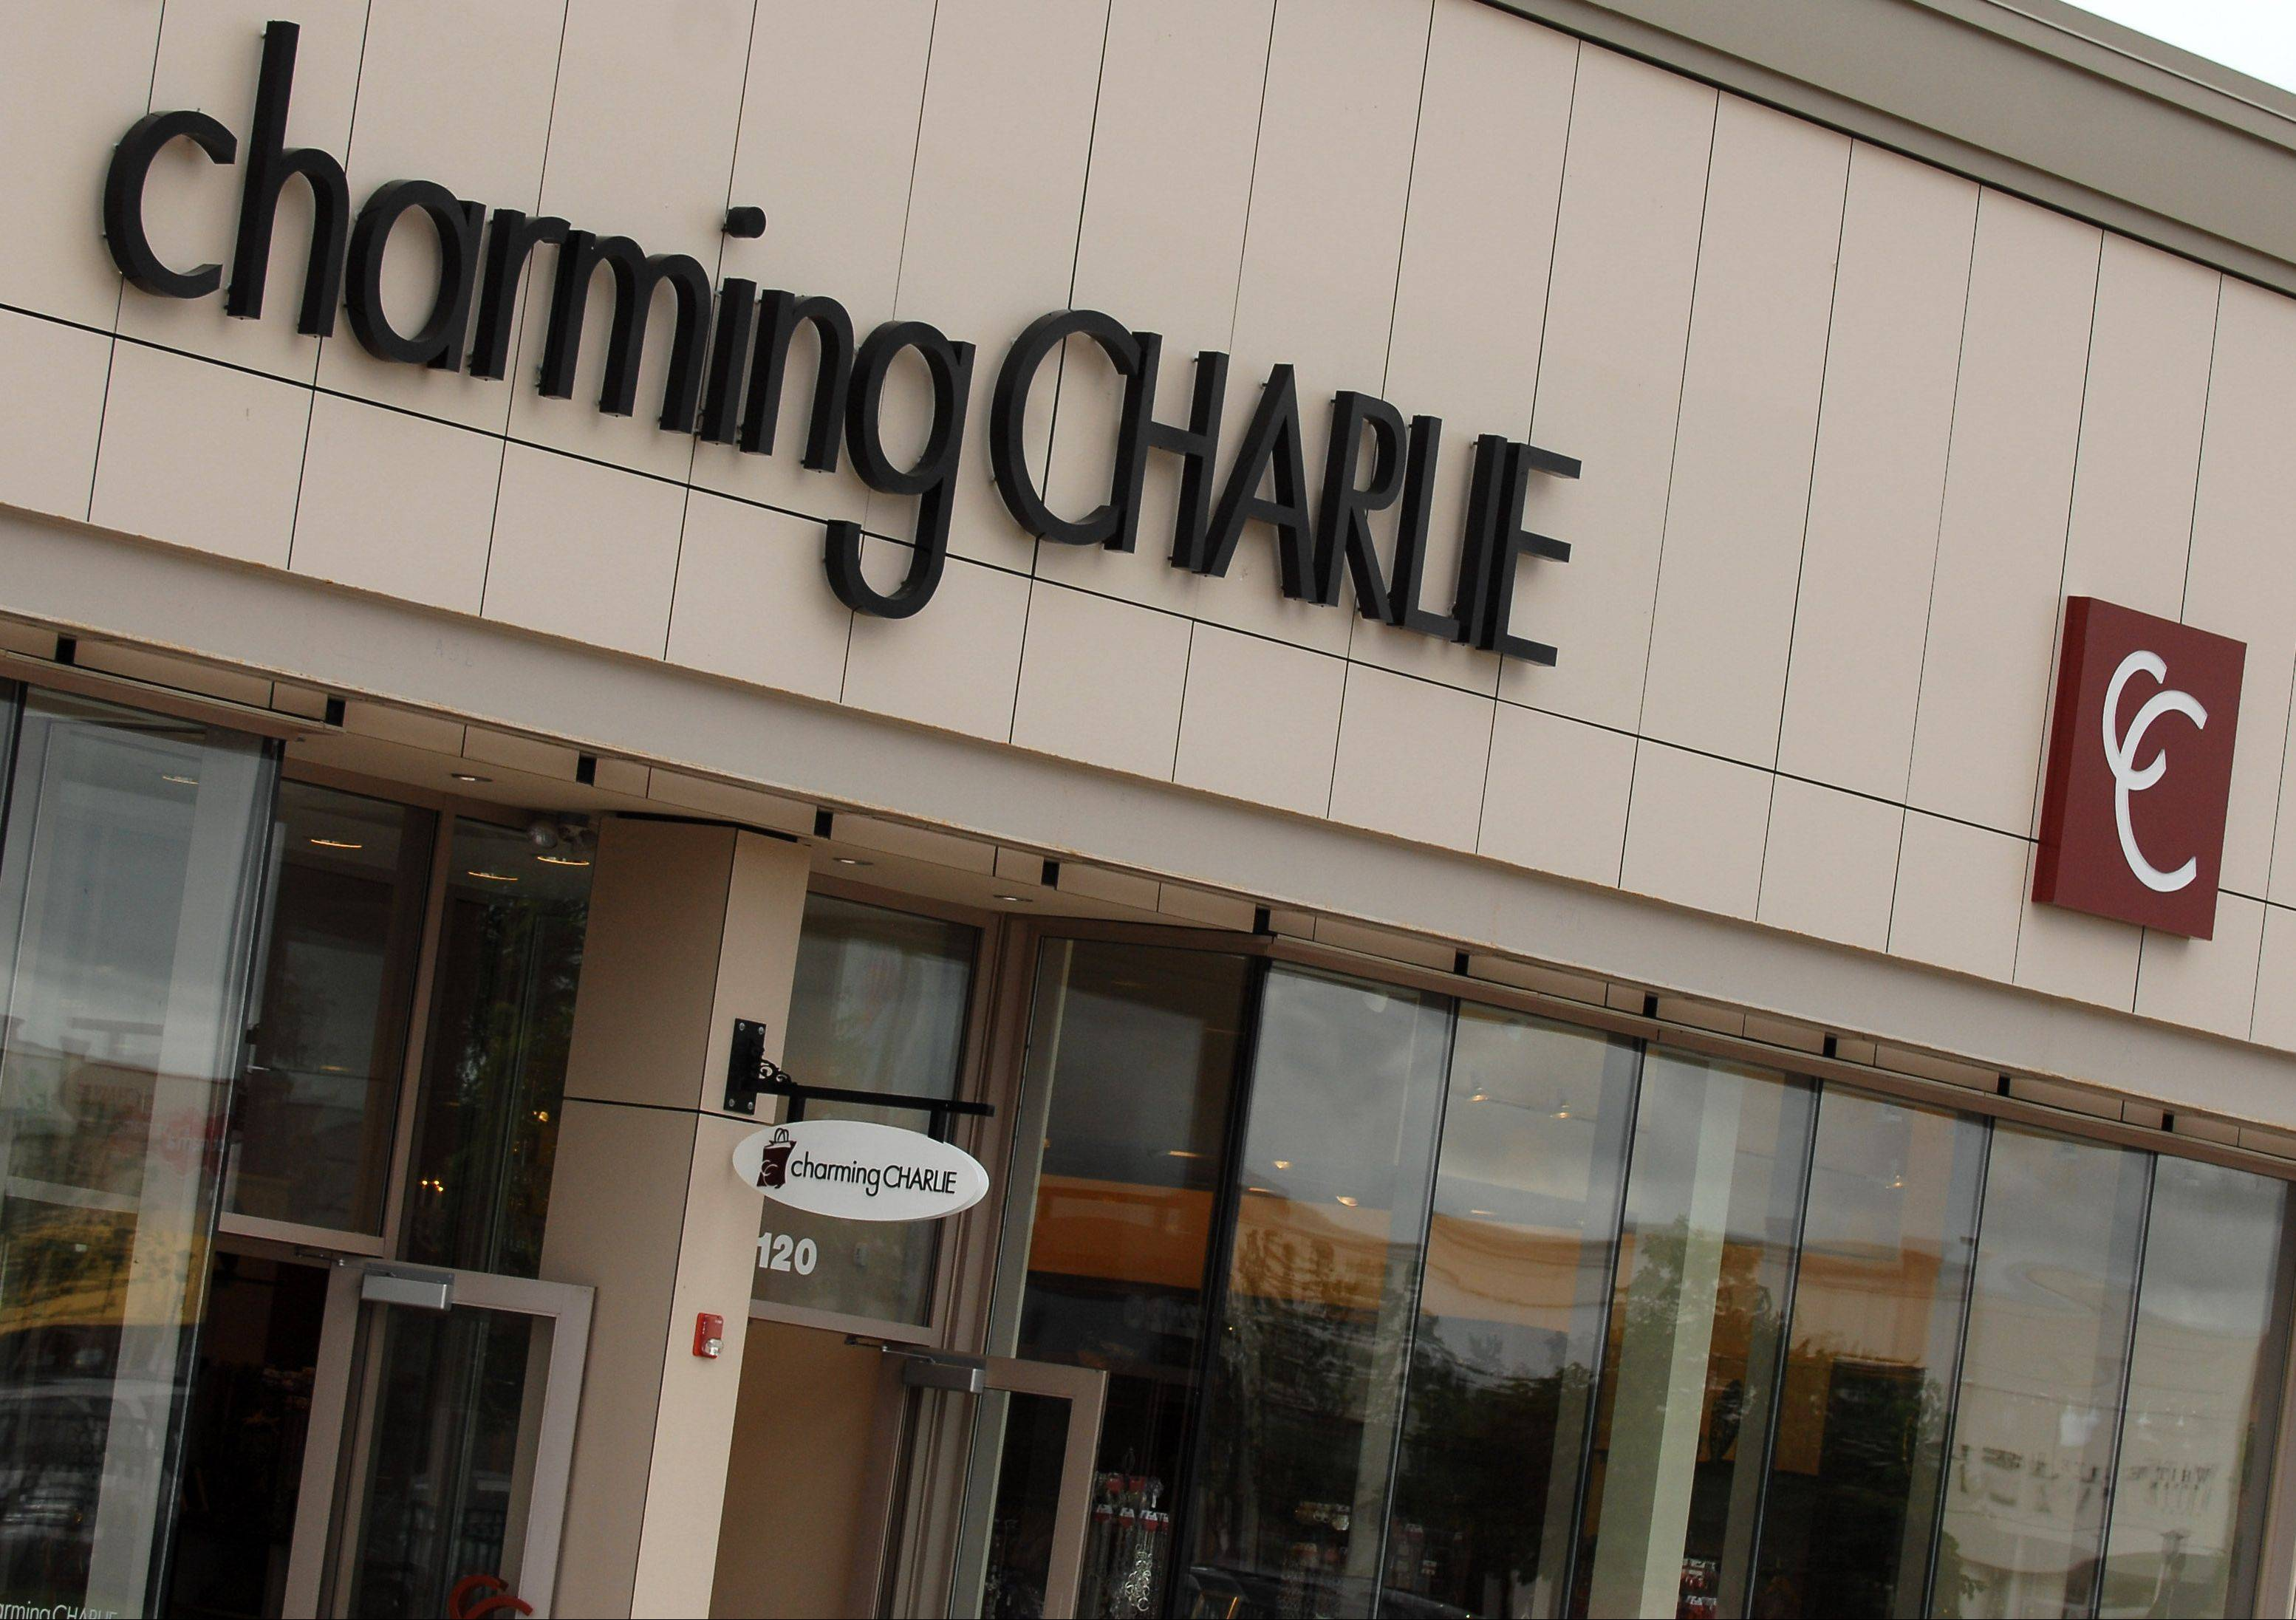 Charming Charlie, seen here in Algonquin Commons, will soon be opening a new location at Geneva Commons.